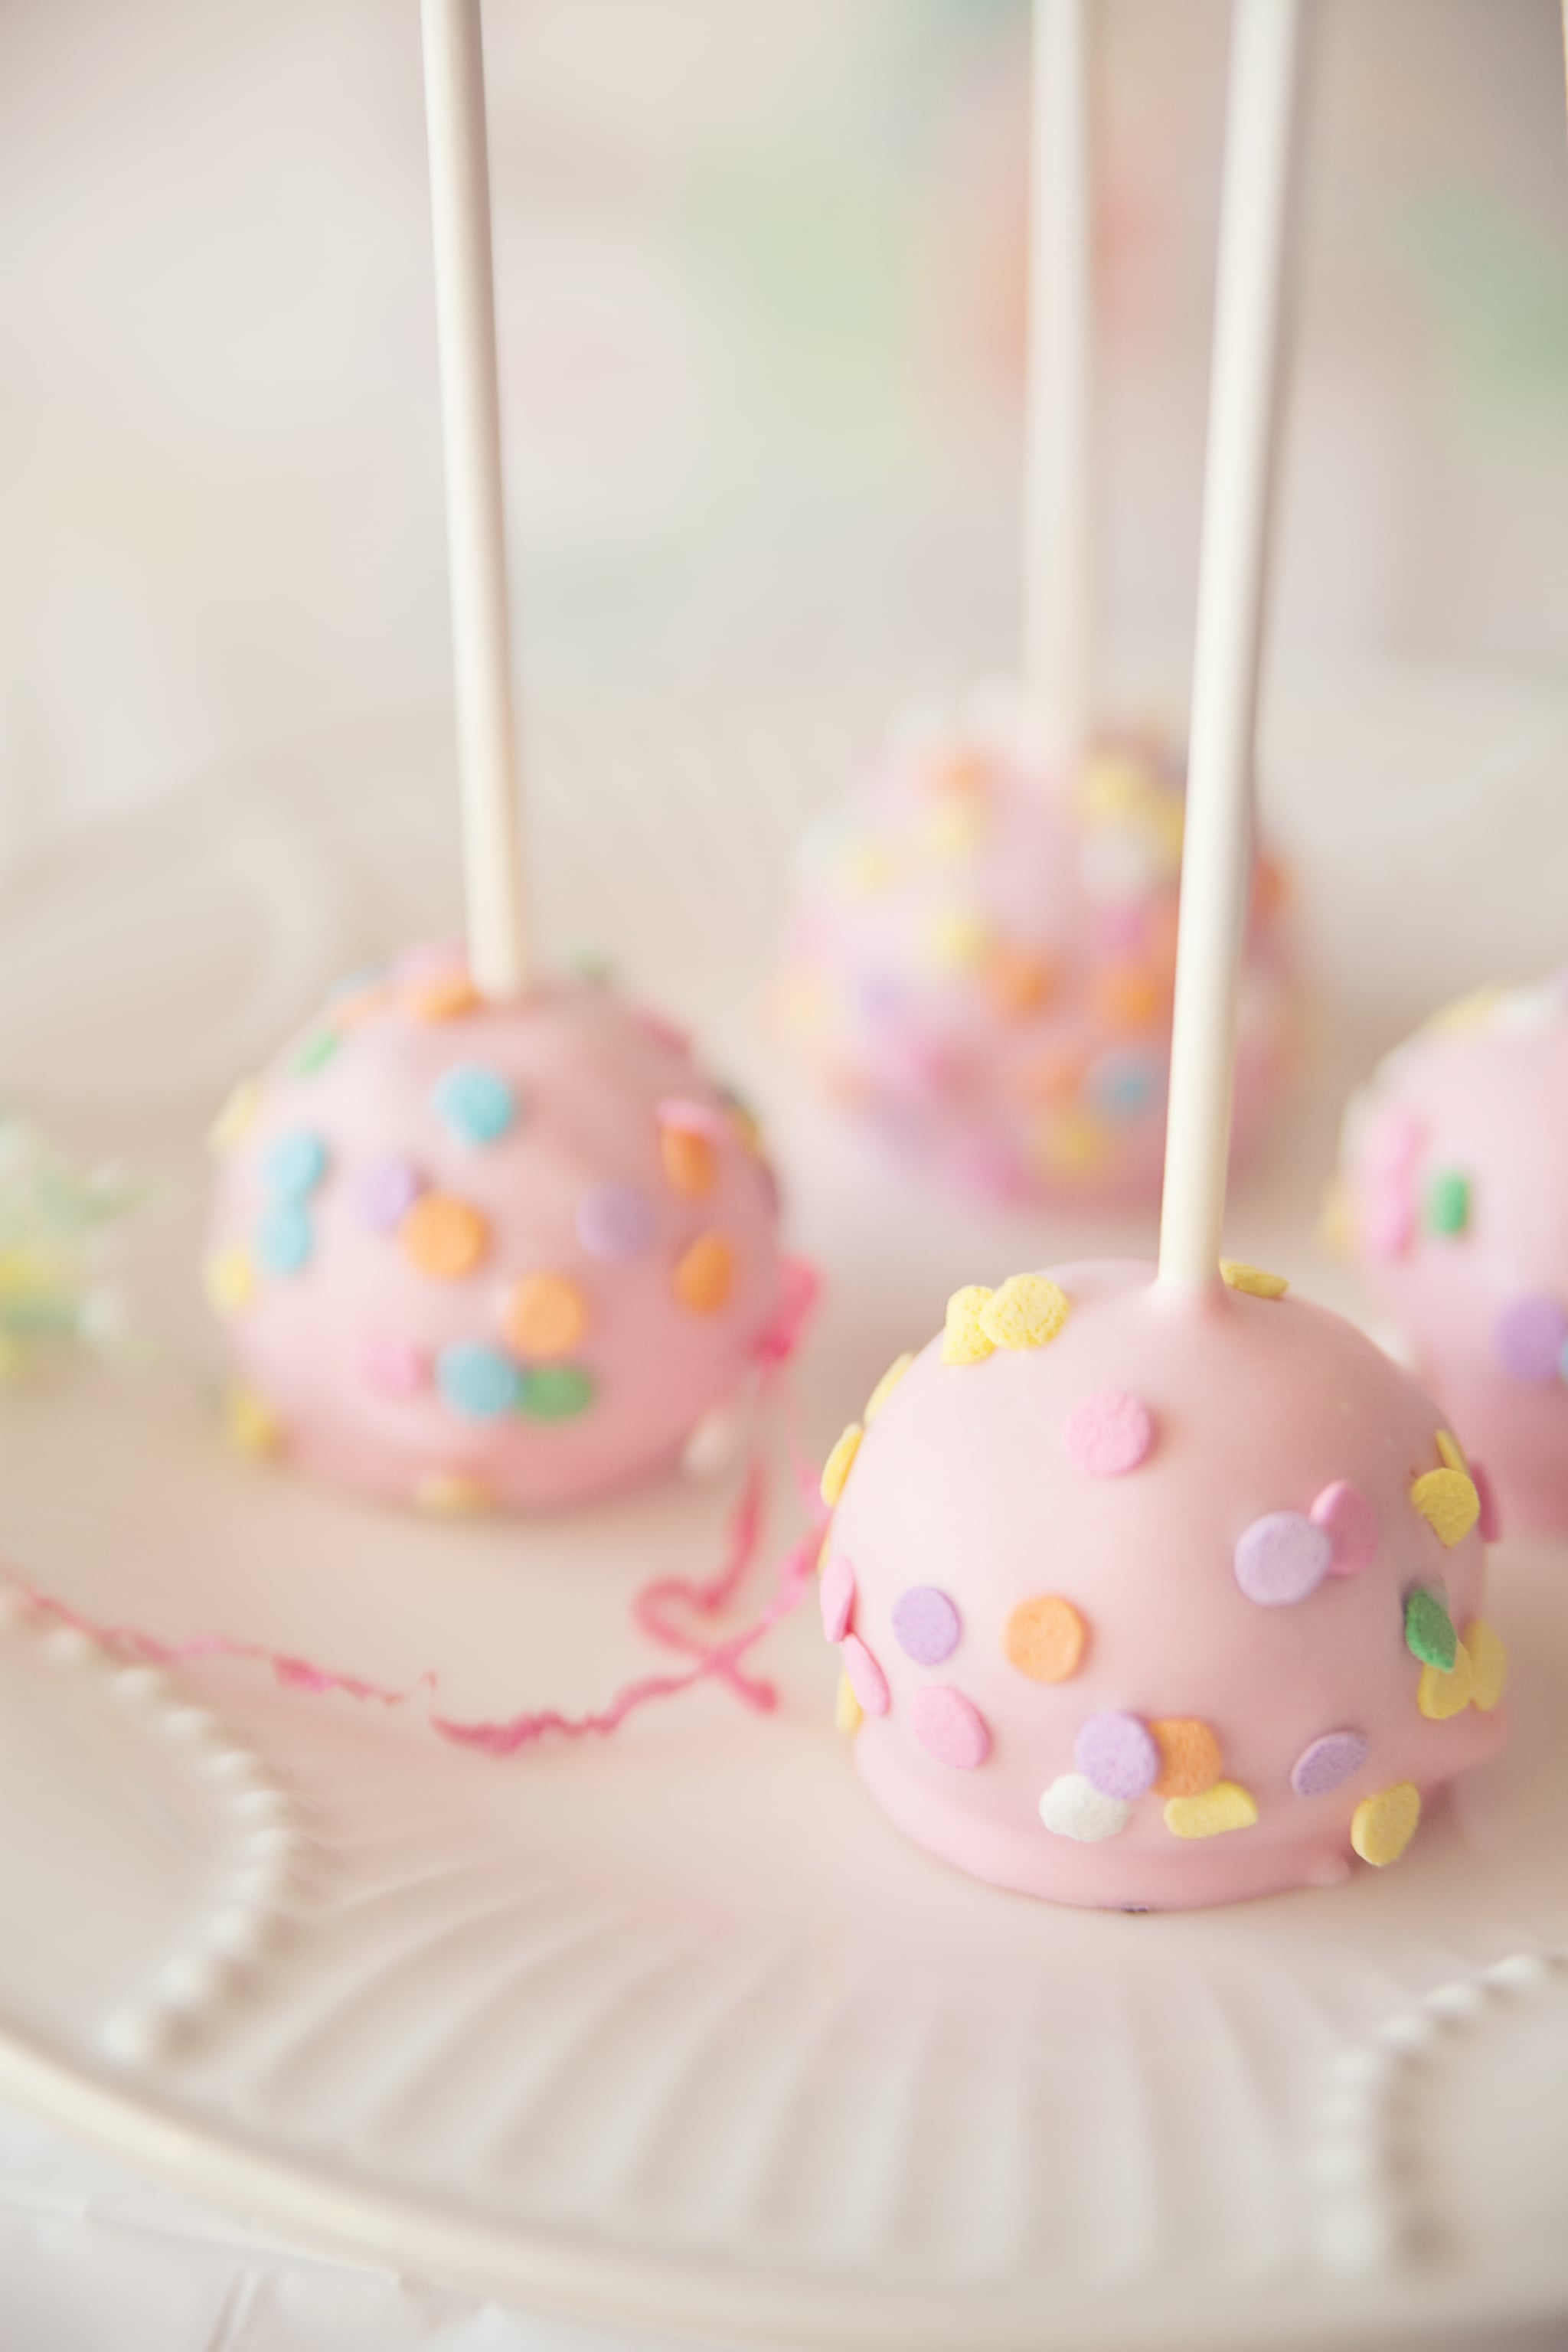 Some chocolate cake pops with pink candy coating and confetti sprinkles on plate.